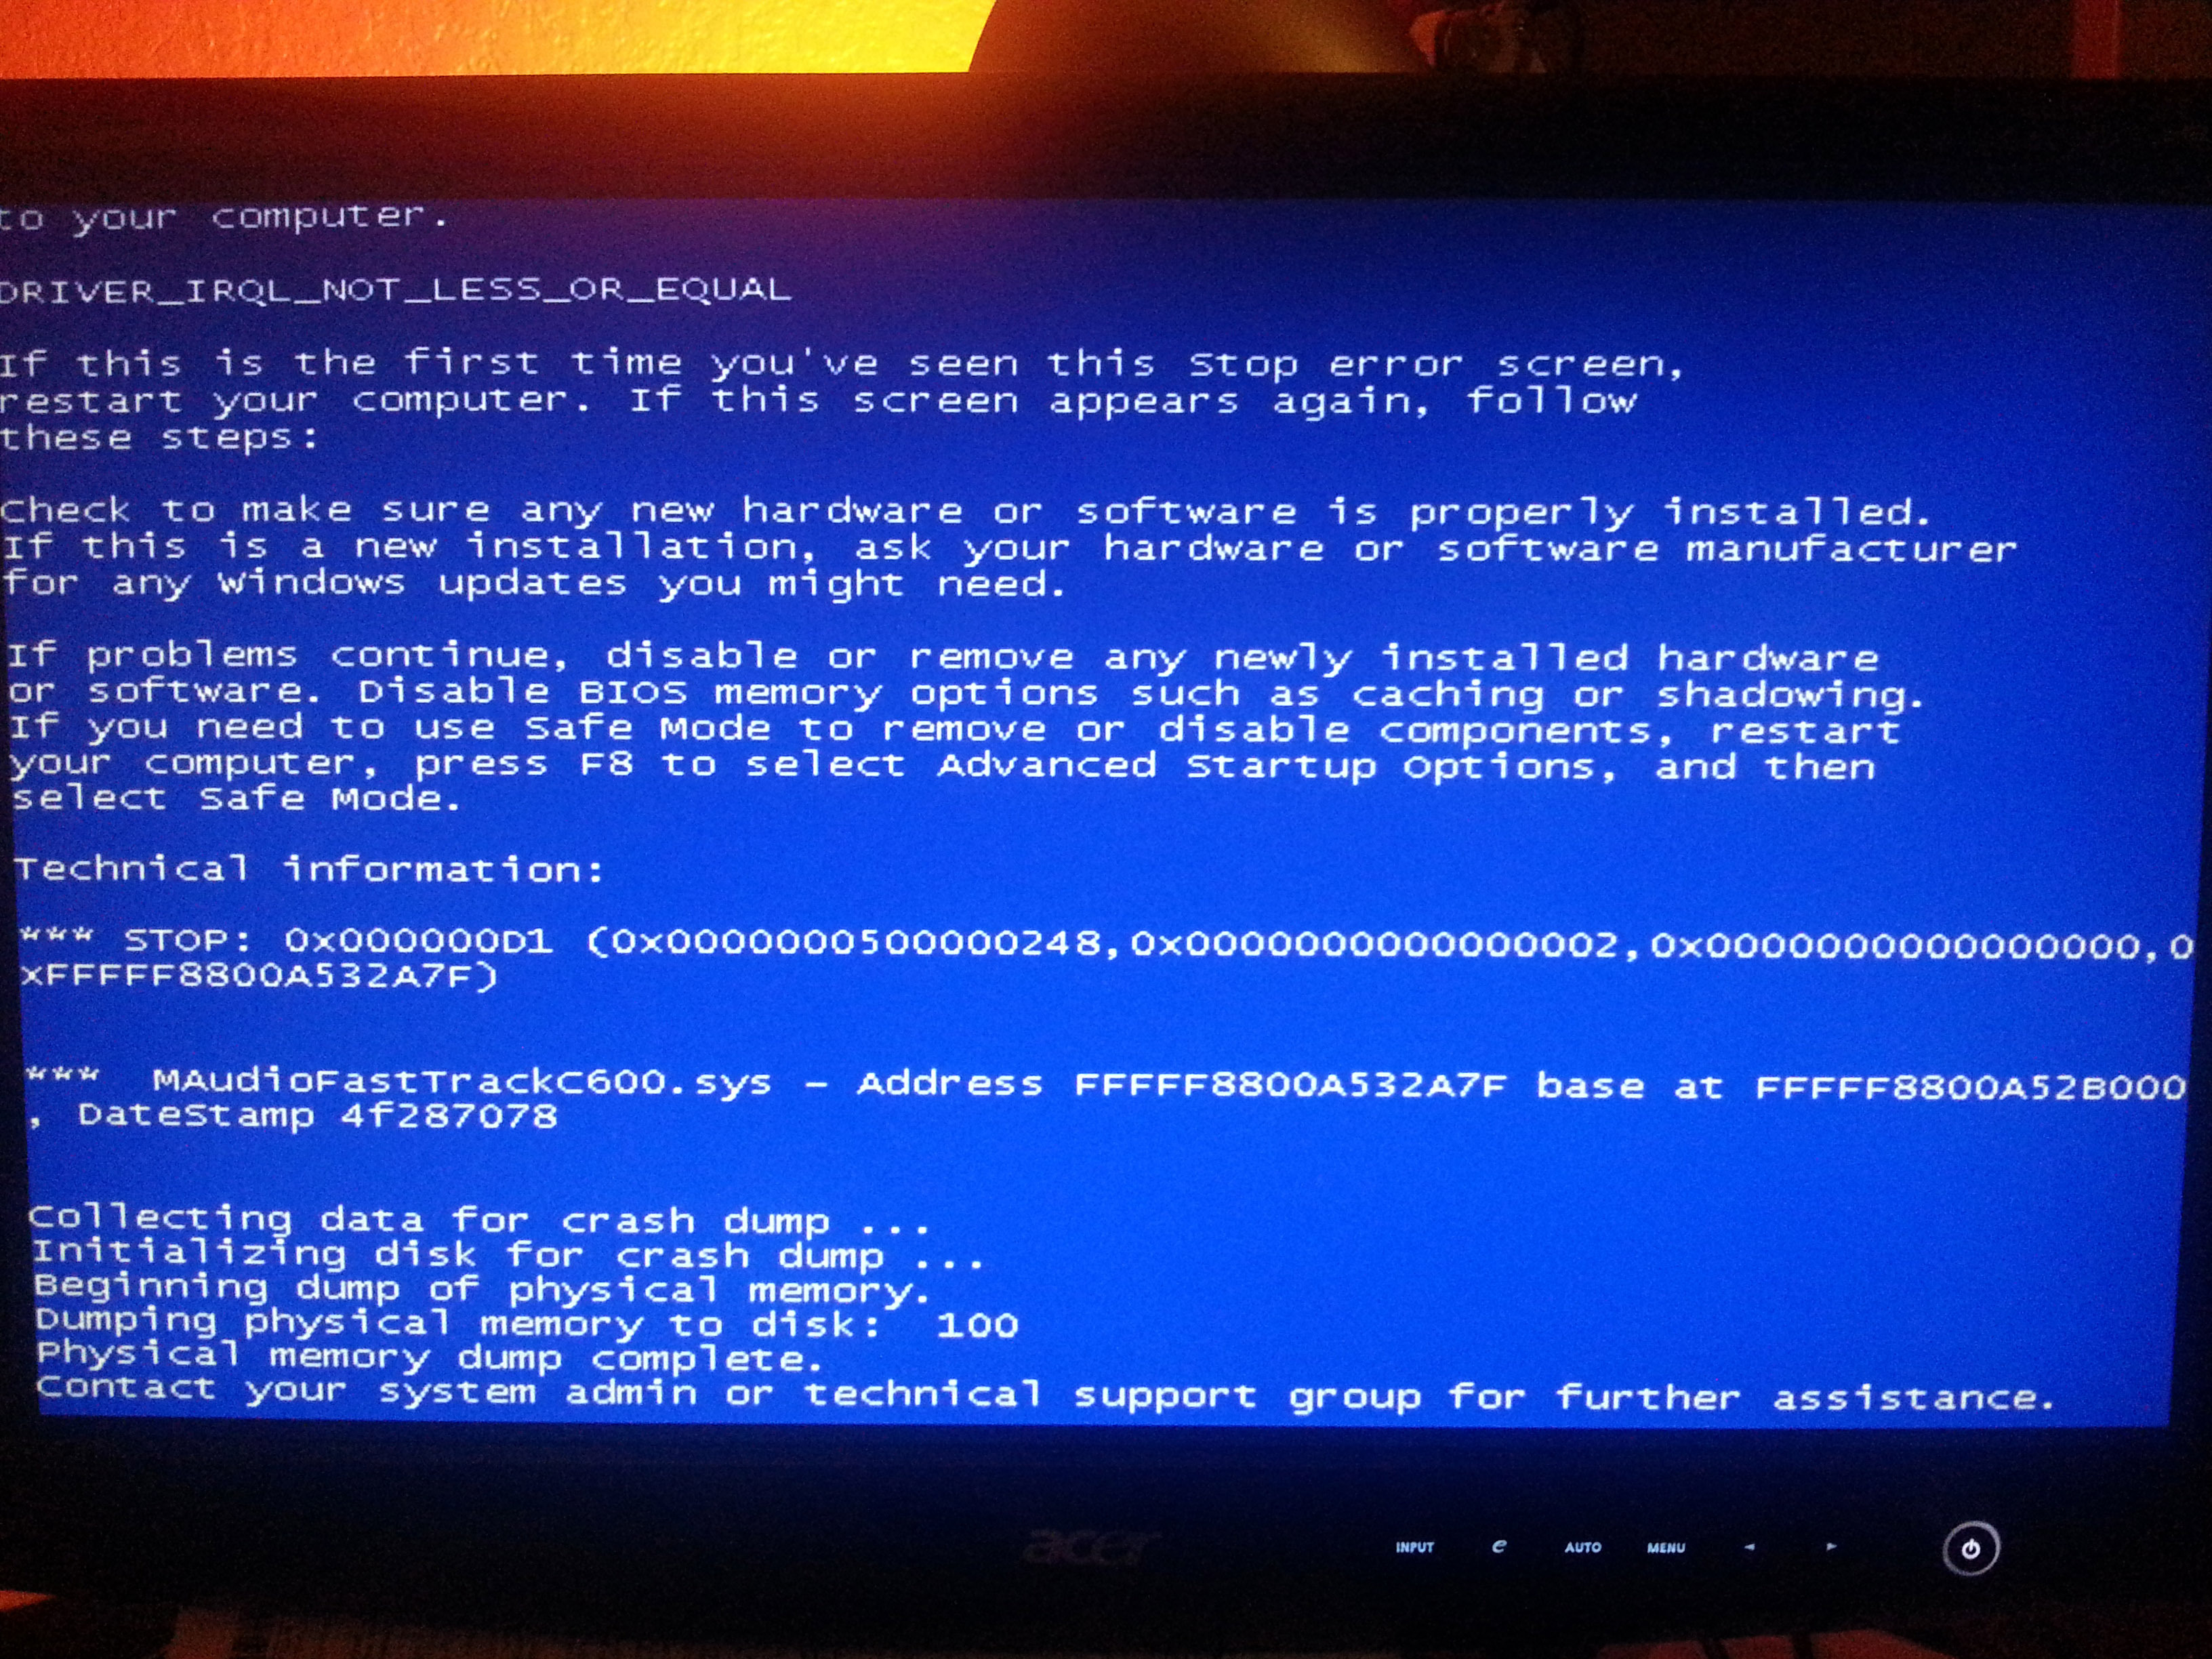 M-Audio Fast Track C600 causes Blue Screen due to driver failure ...